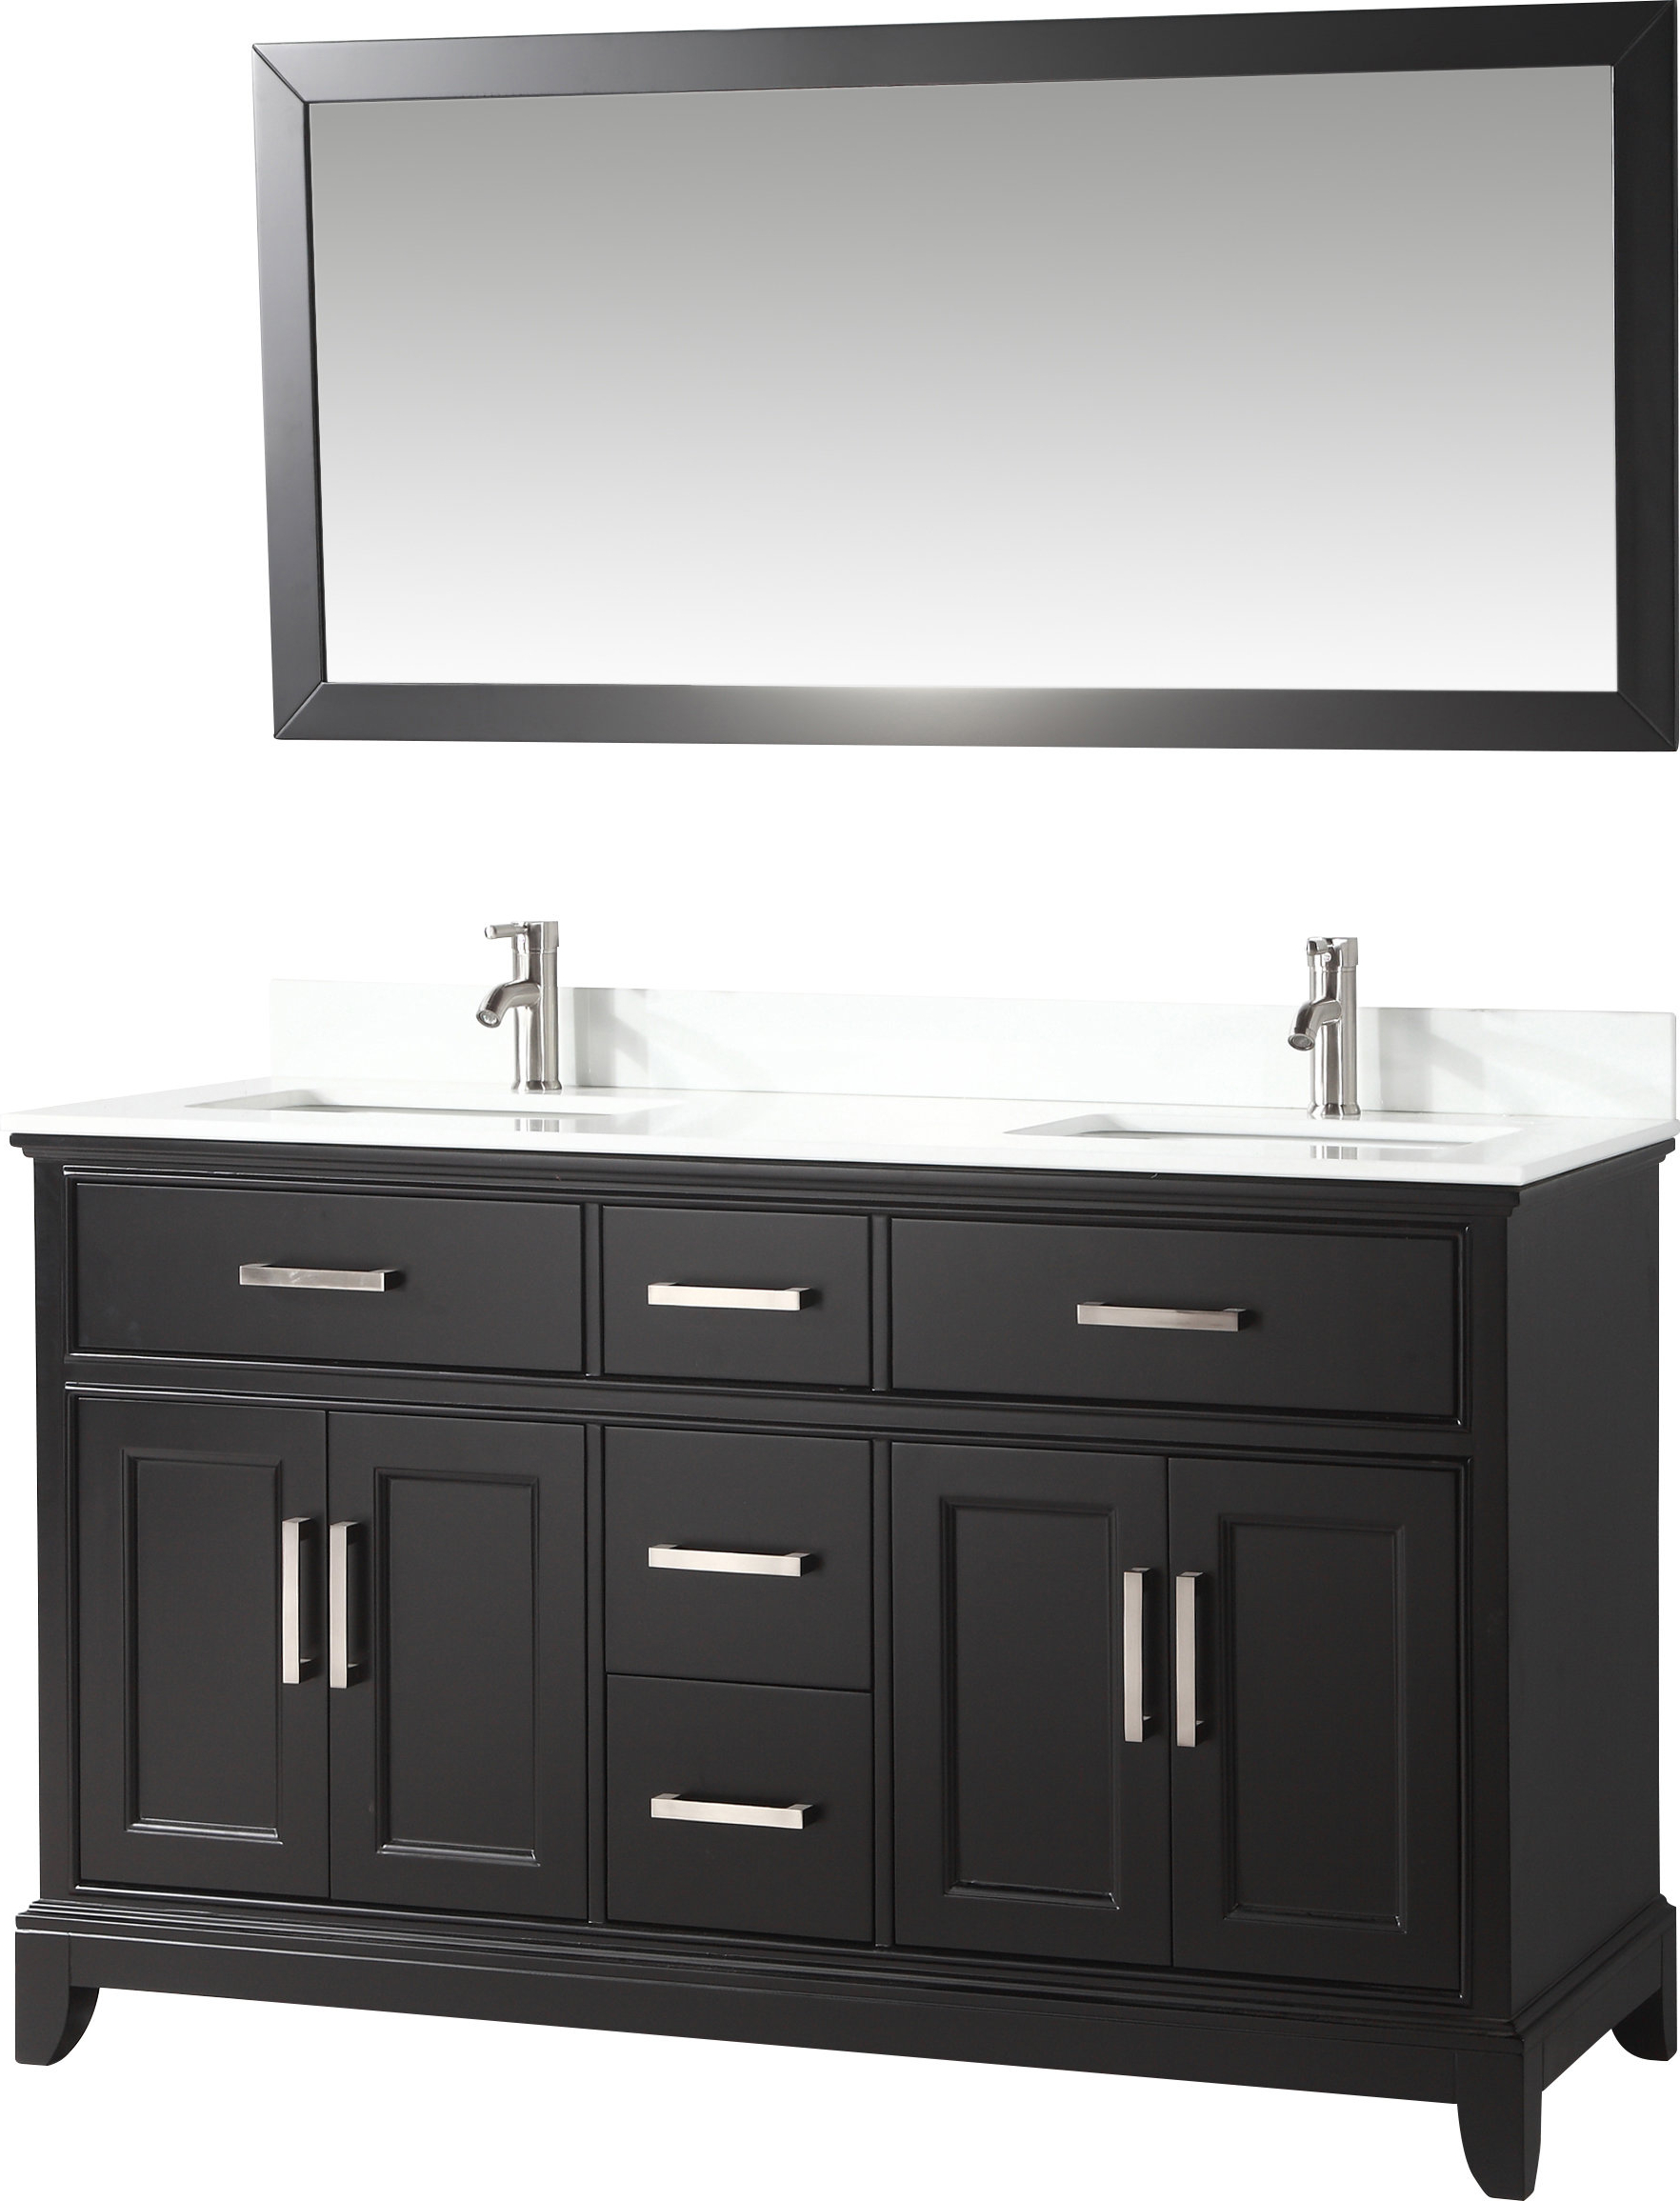 "Most Recently Released Blevens 60"" Double Bathroom Vanity Set With Mirror With Landover Rustic Distressed Bathroom/vanity Mirrors (View 15 of 20)"